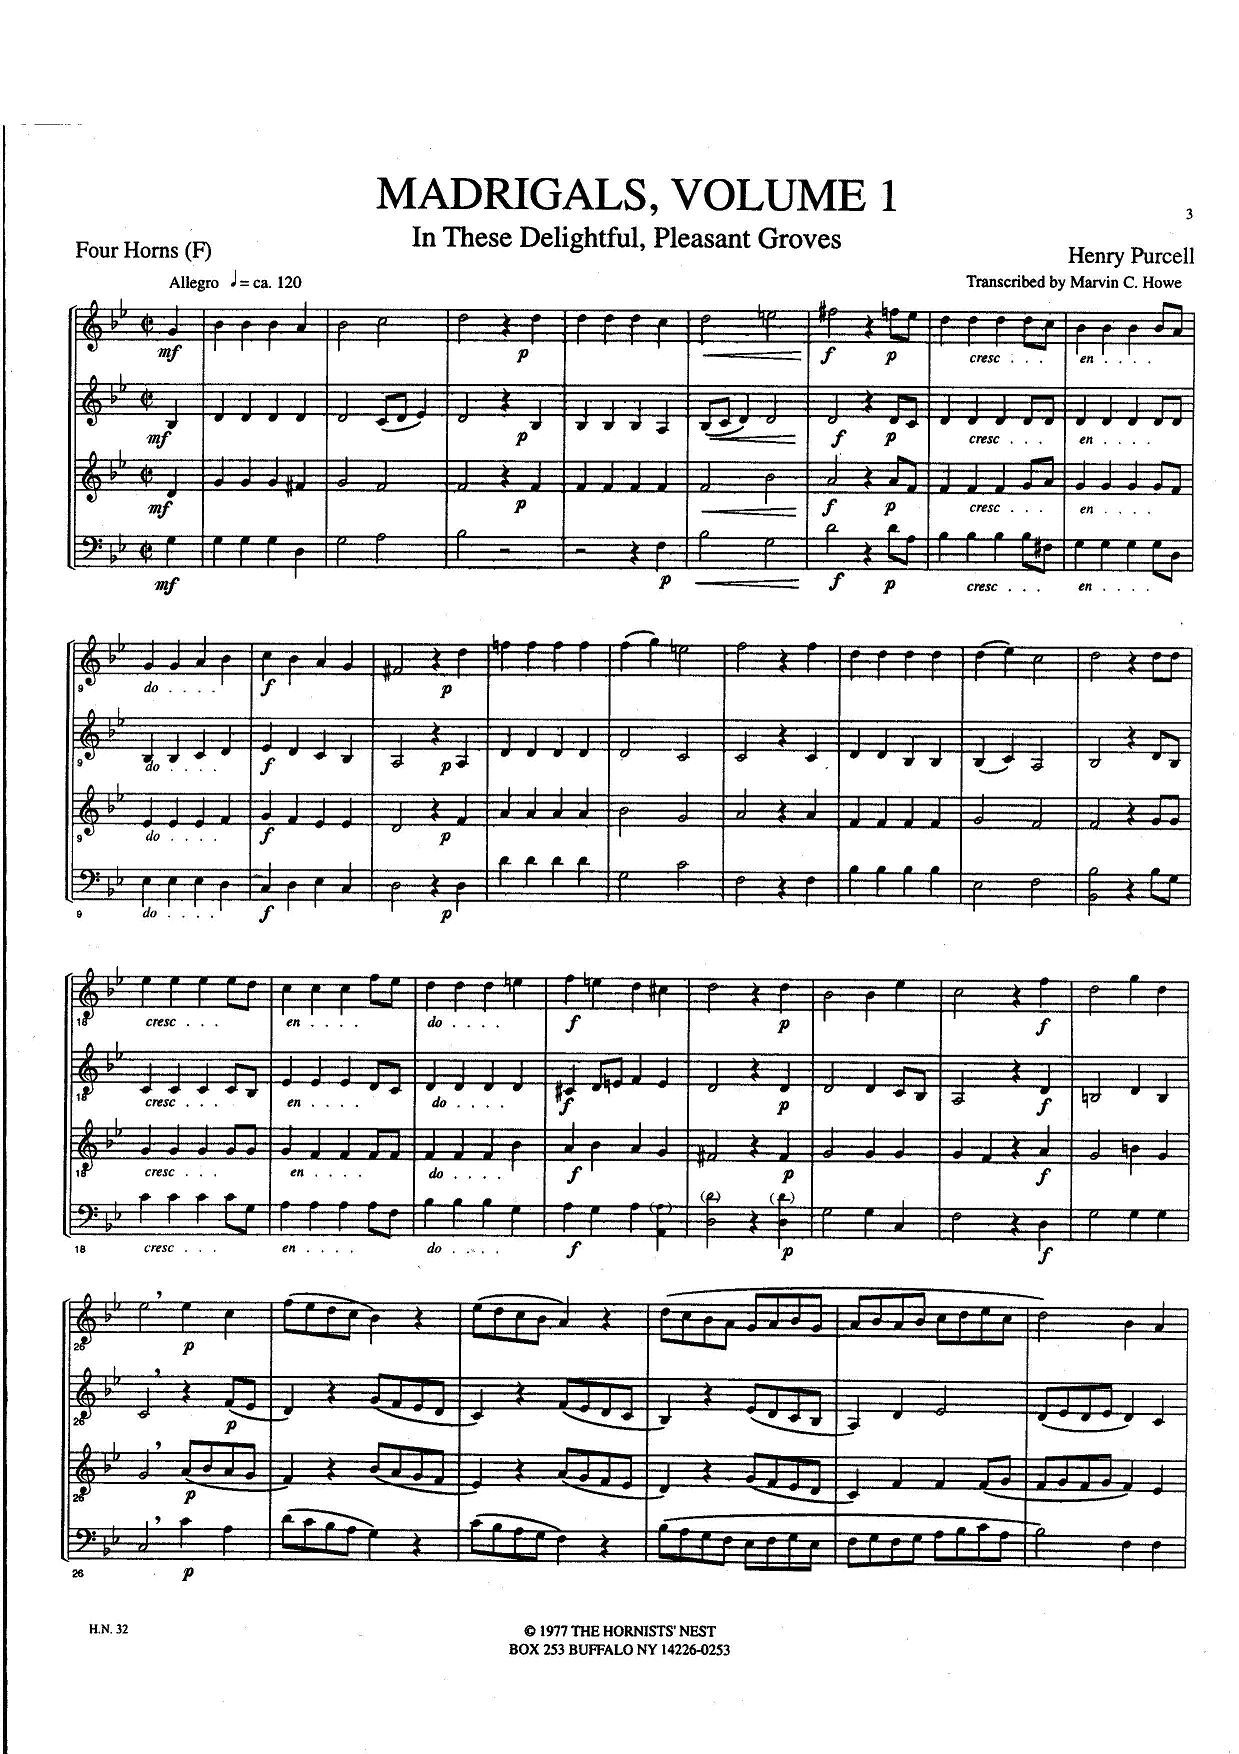 Madrigals, Vol. 1 Transcribed by Marvin C. Howe